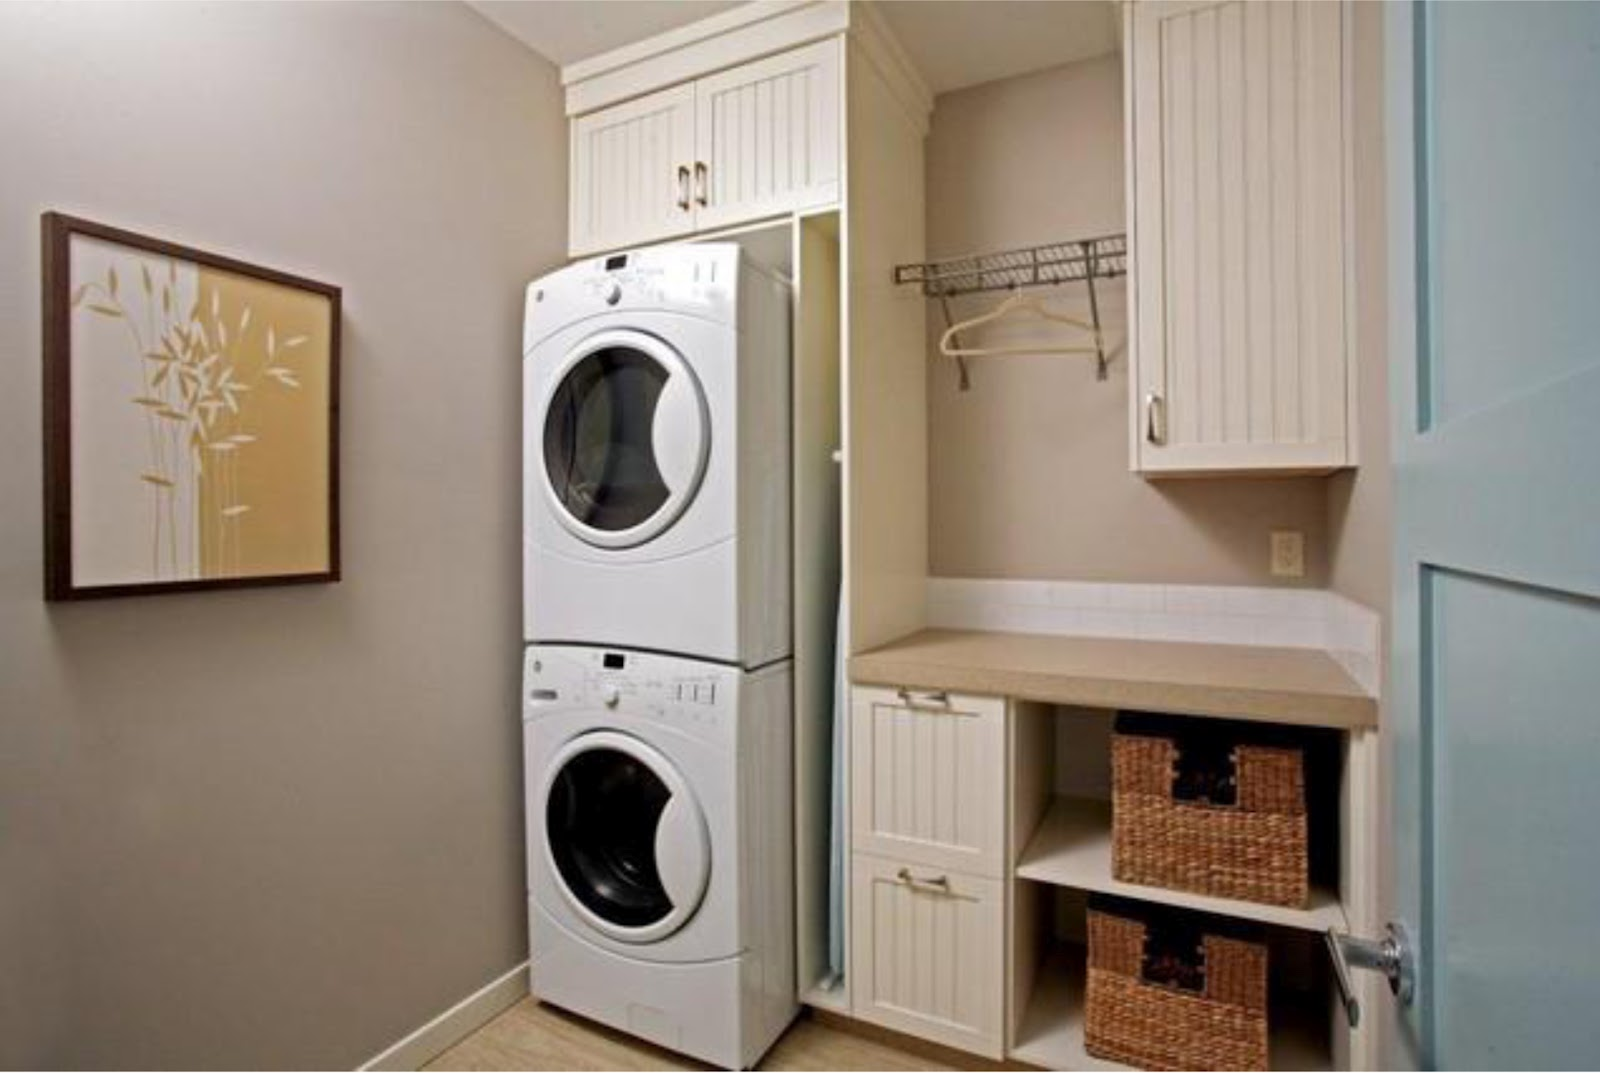 Simplifying remodeling designer 39 s touch 10 tidy laundry rooms - Washing machine for small spaces gallery ...